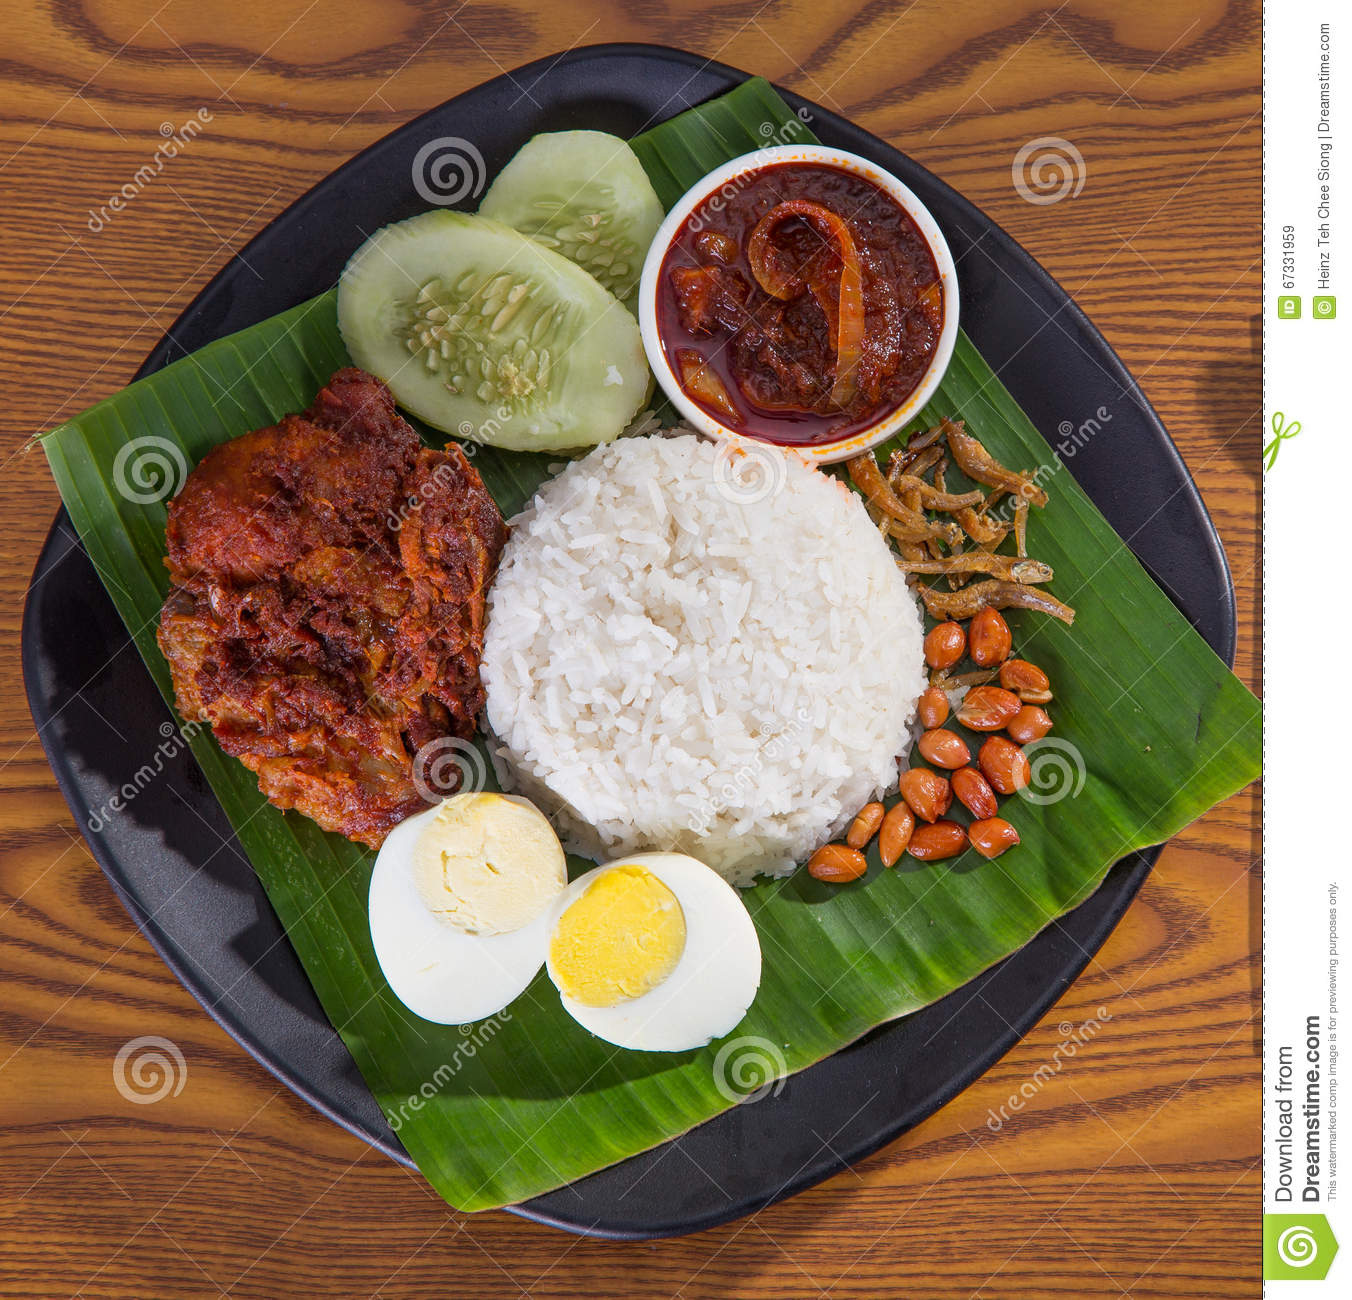 Indonesian Food: 50 of the Best Dishes You Should Eat